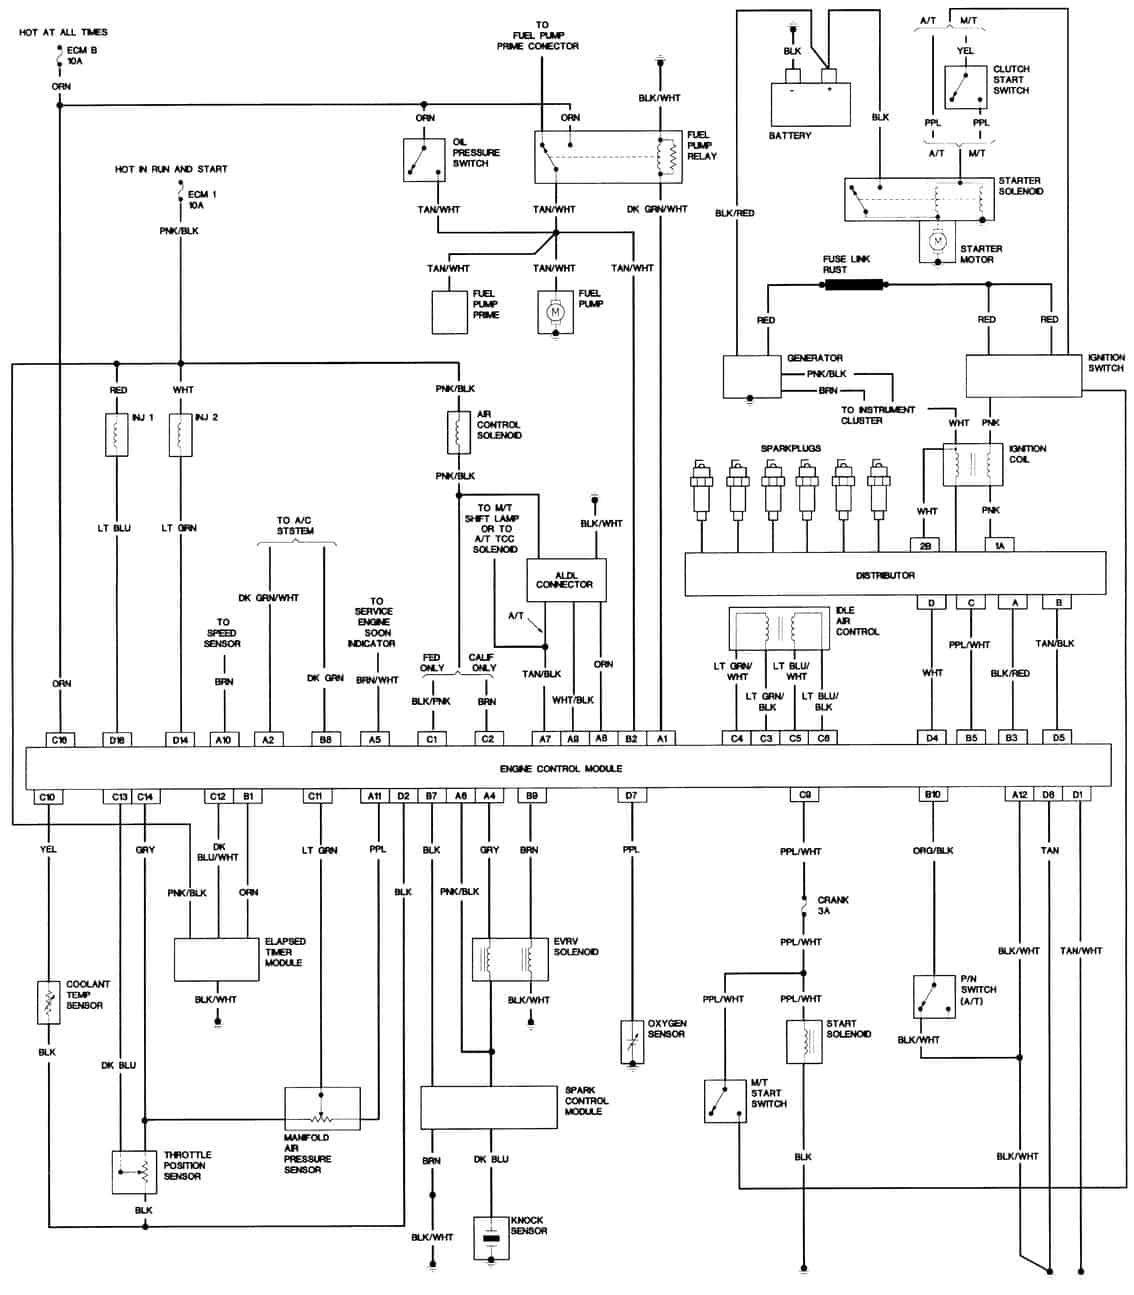 hight resolution of 93 v6 4 3 engine diagram circuit diagram symbols u2022 2003 chevy cavalier engine diagram